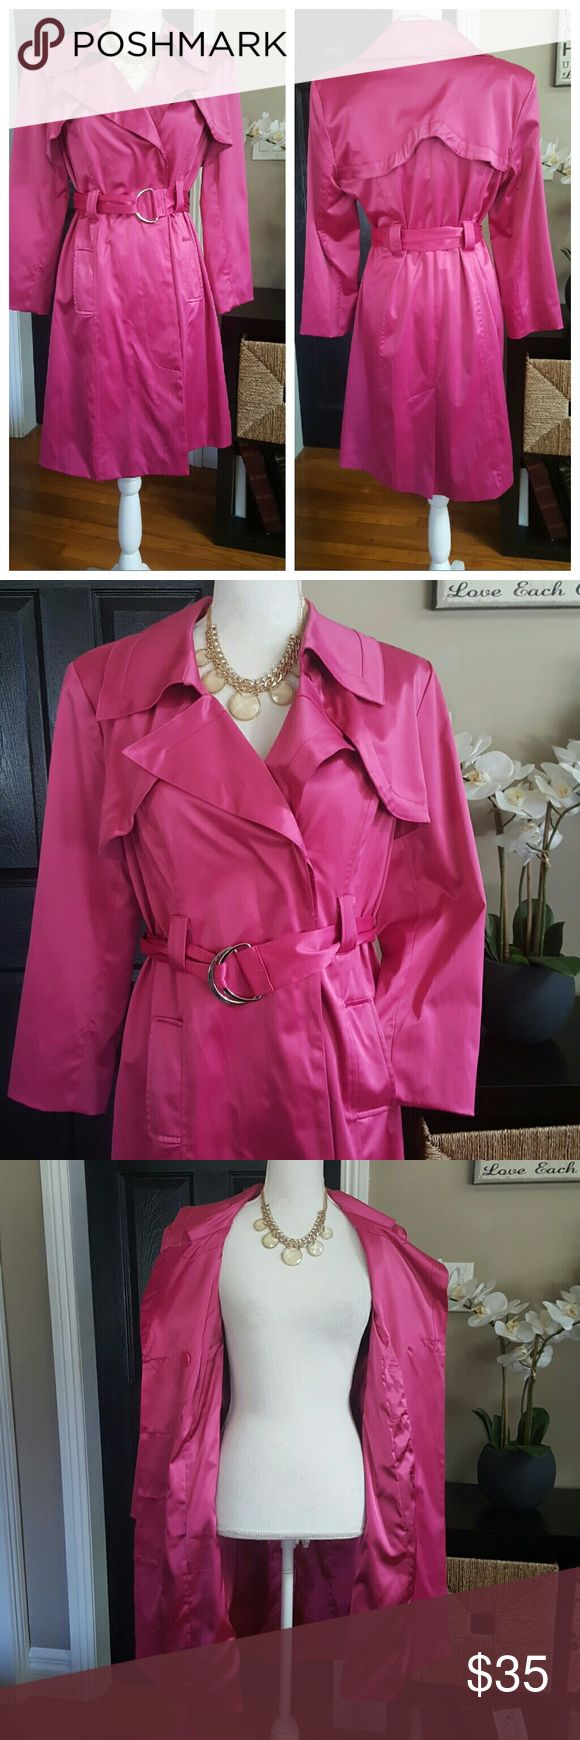 """NY Collection Coat Gorgeous  coat  by NY Collection. 52% polyester 46% cotton Aprox 36"""" long. NY Collection Jackets & Coats Trench Coats"""